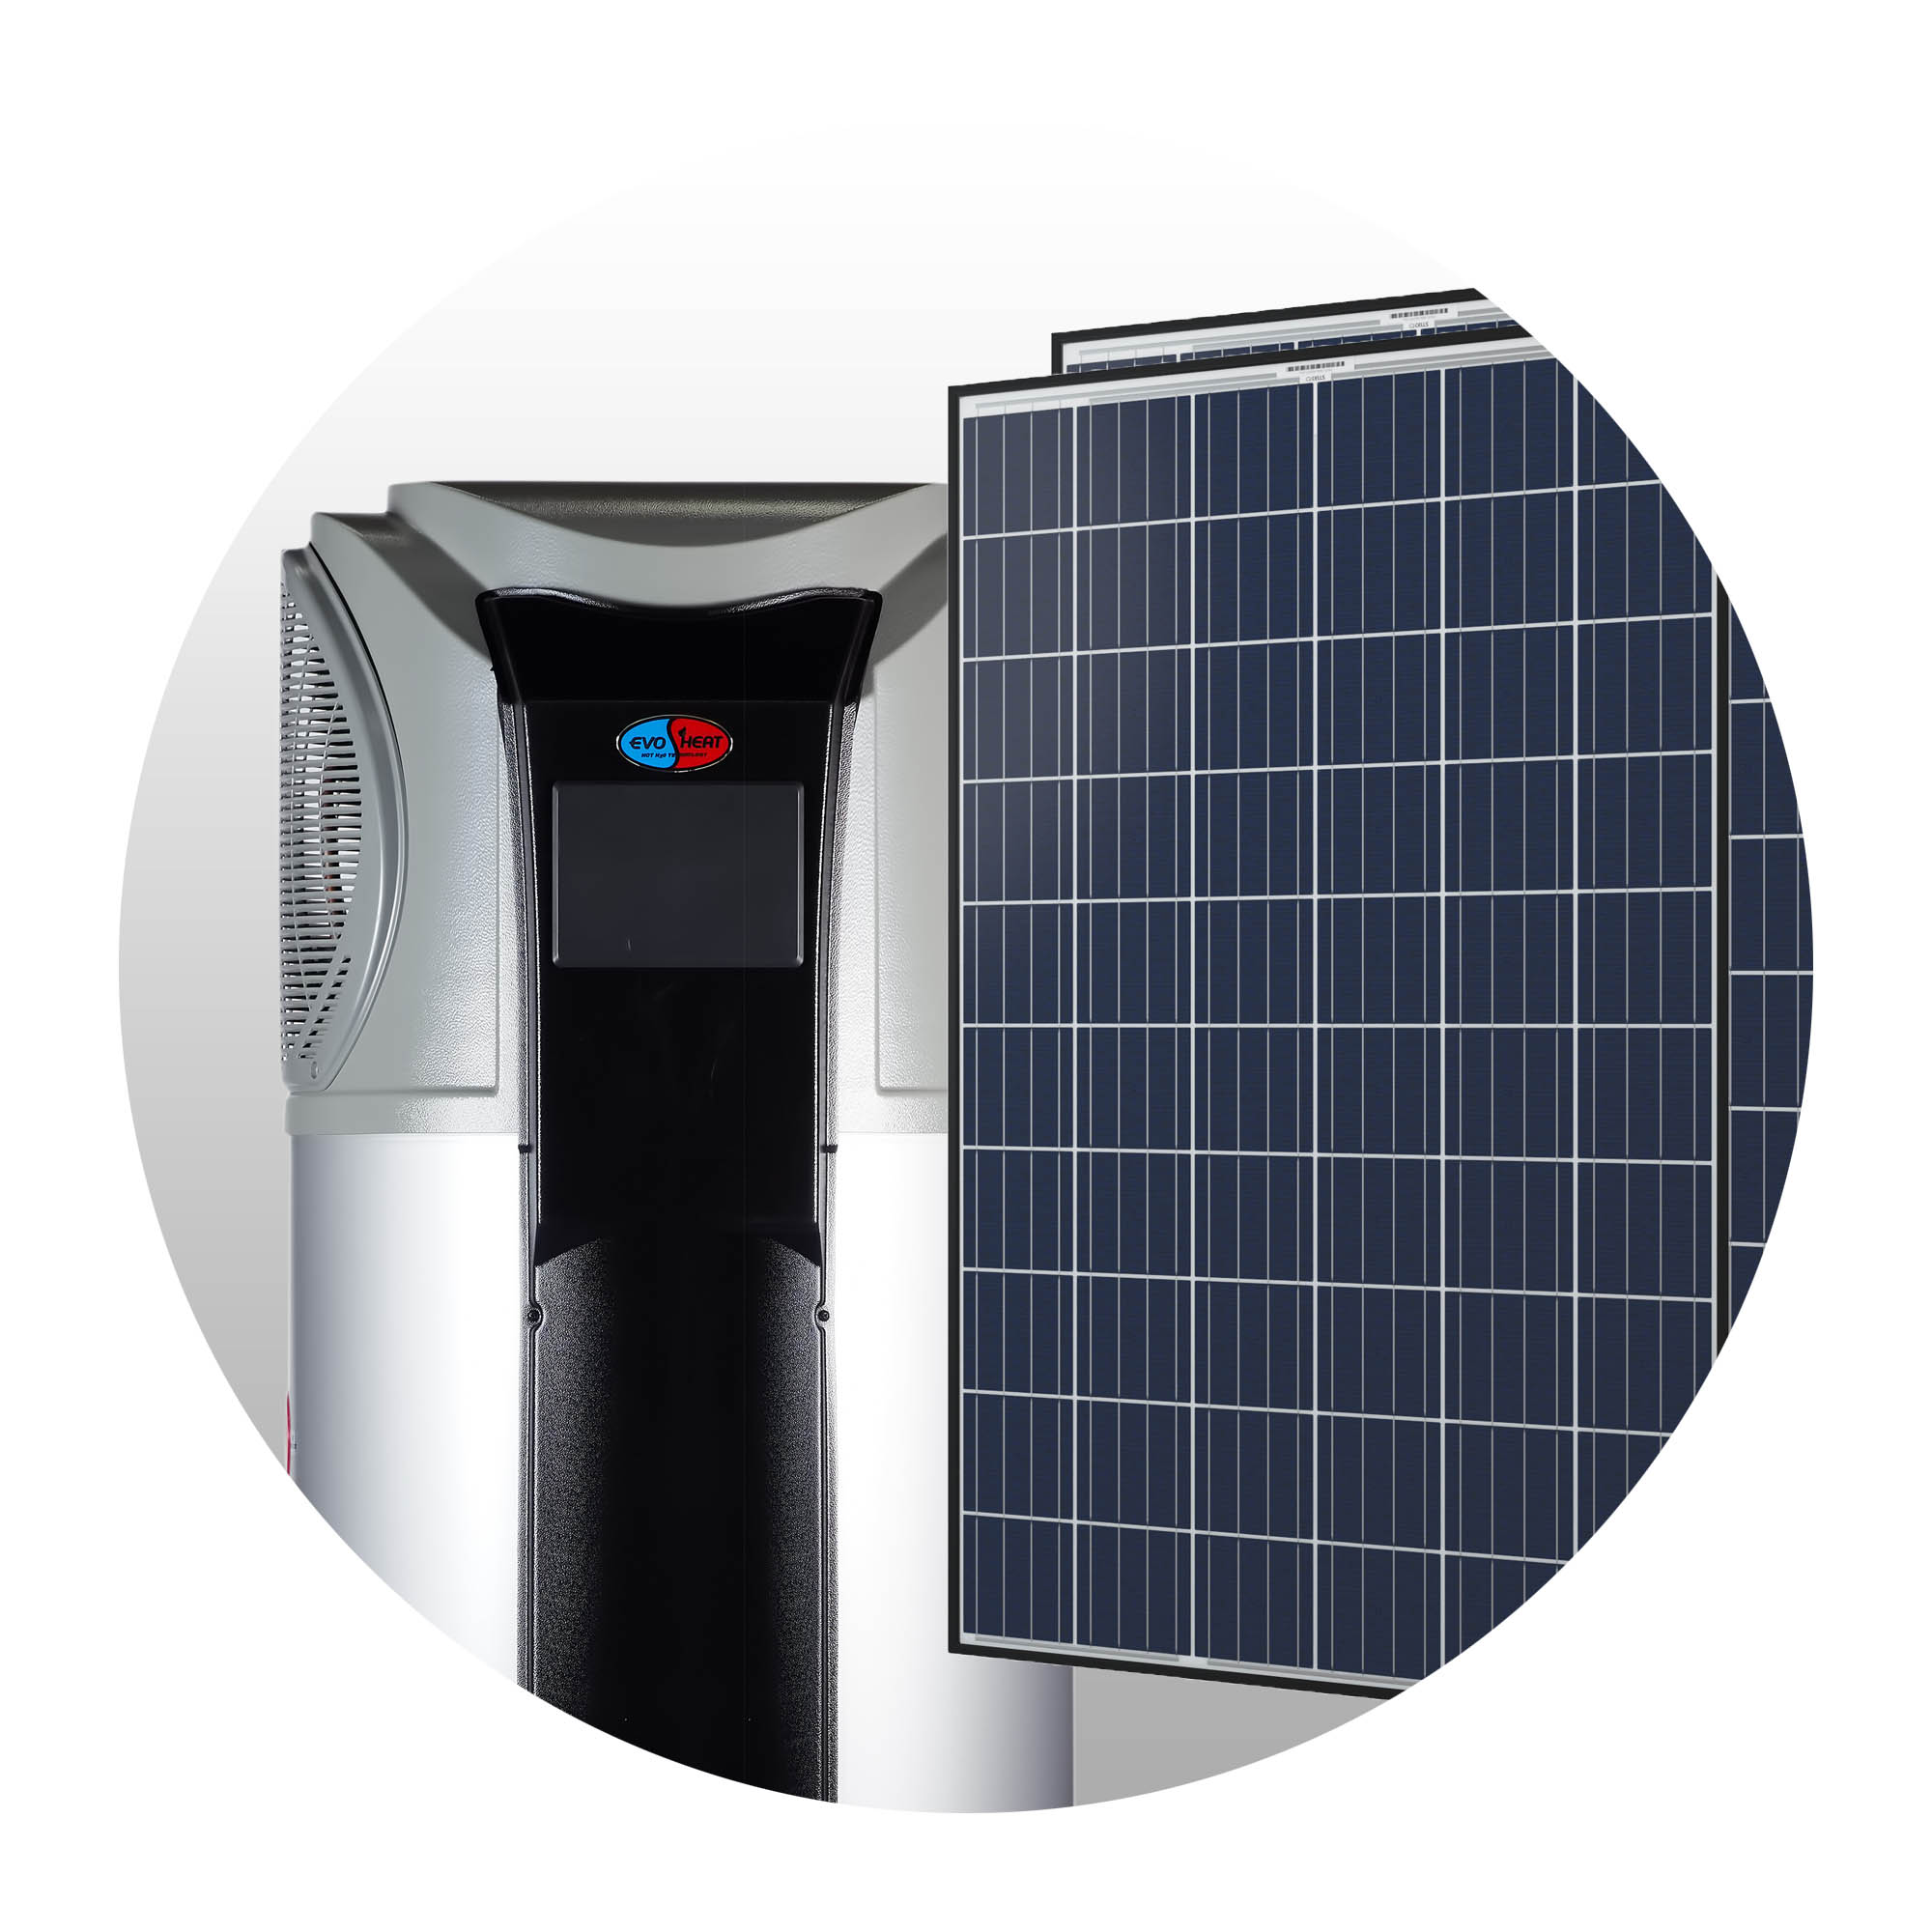 Introducing the Albany Solar Eco Package. - More economical than battery storage, more sustainable than grid power.